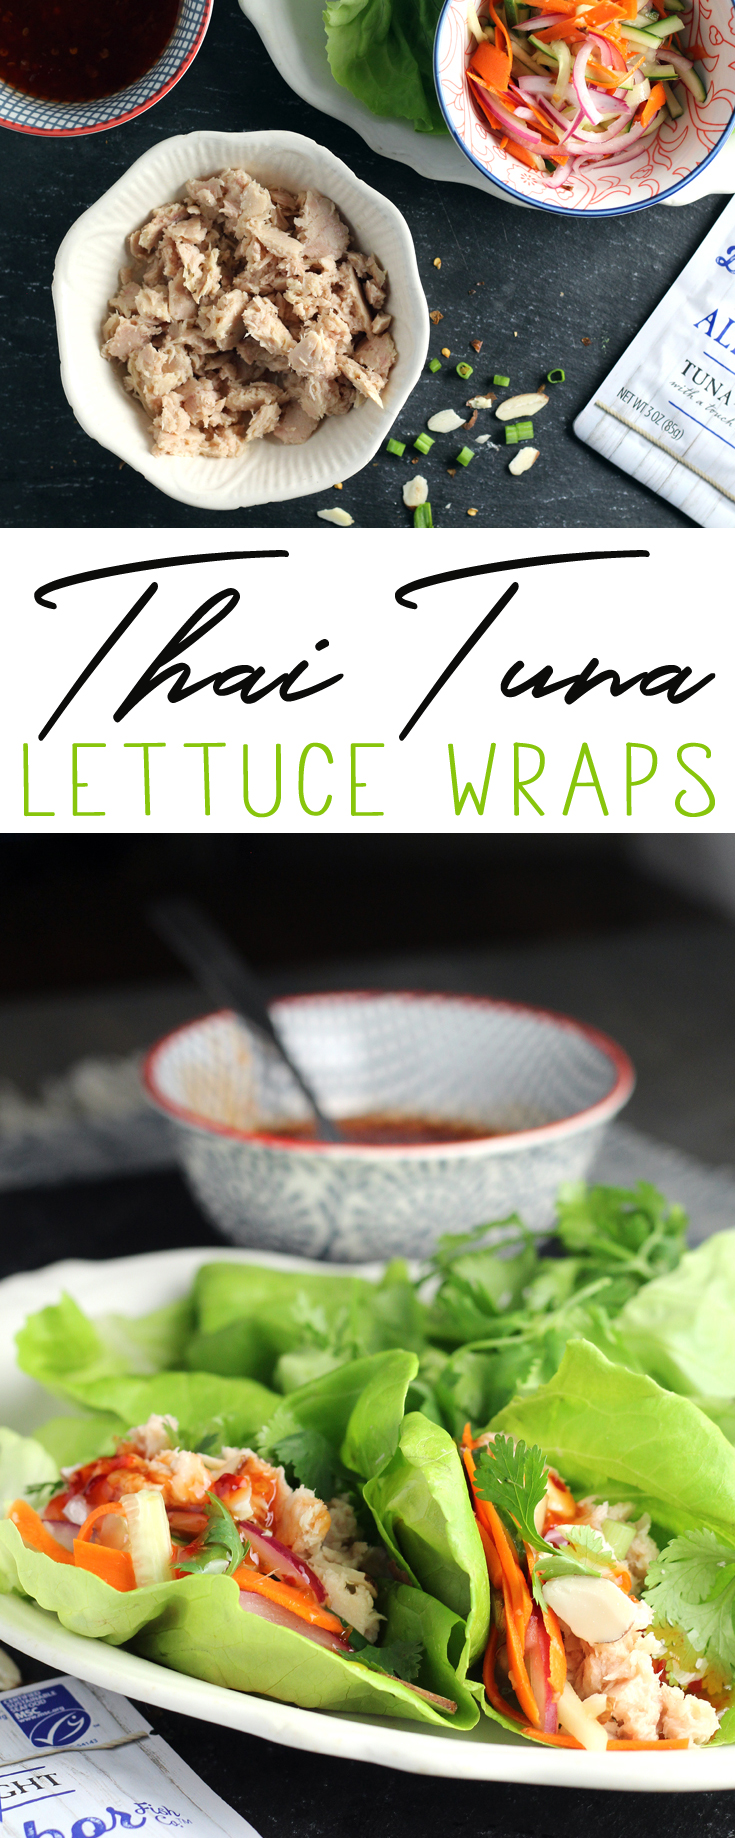 Thai Tuna Lettuce Wraps have it all. You get the mild flavor of white Albacore tuna + tangy vegetables + sweet Thai chili sauce + crunchy almonds and more.